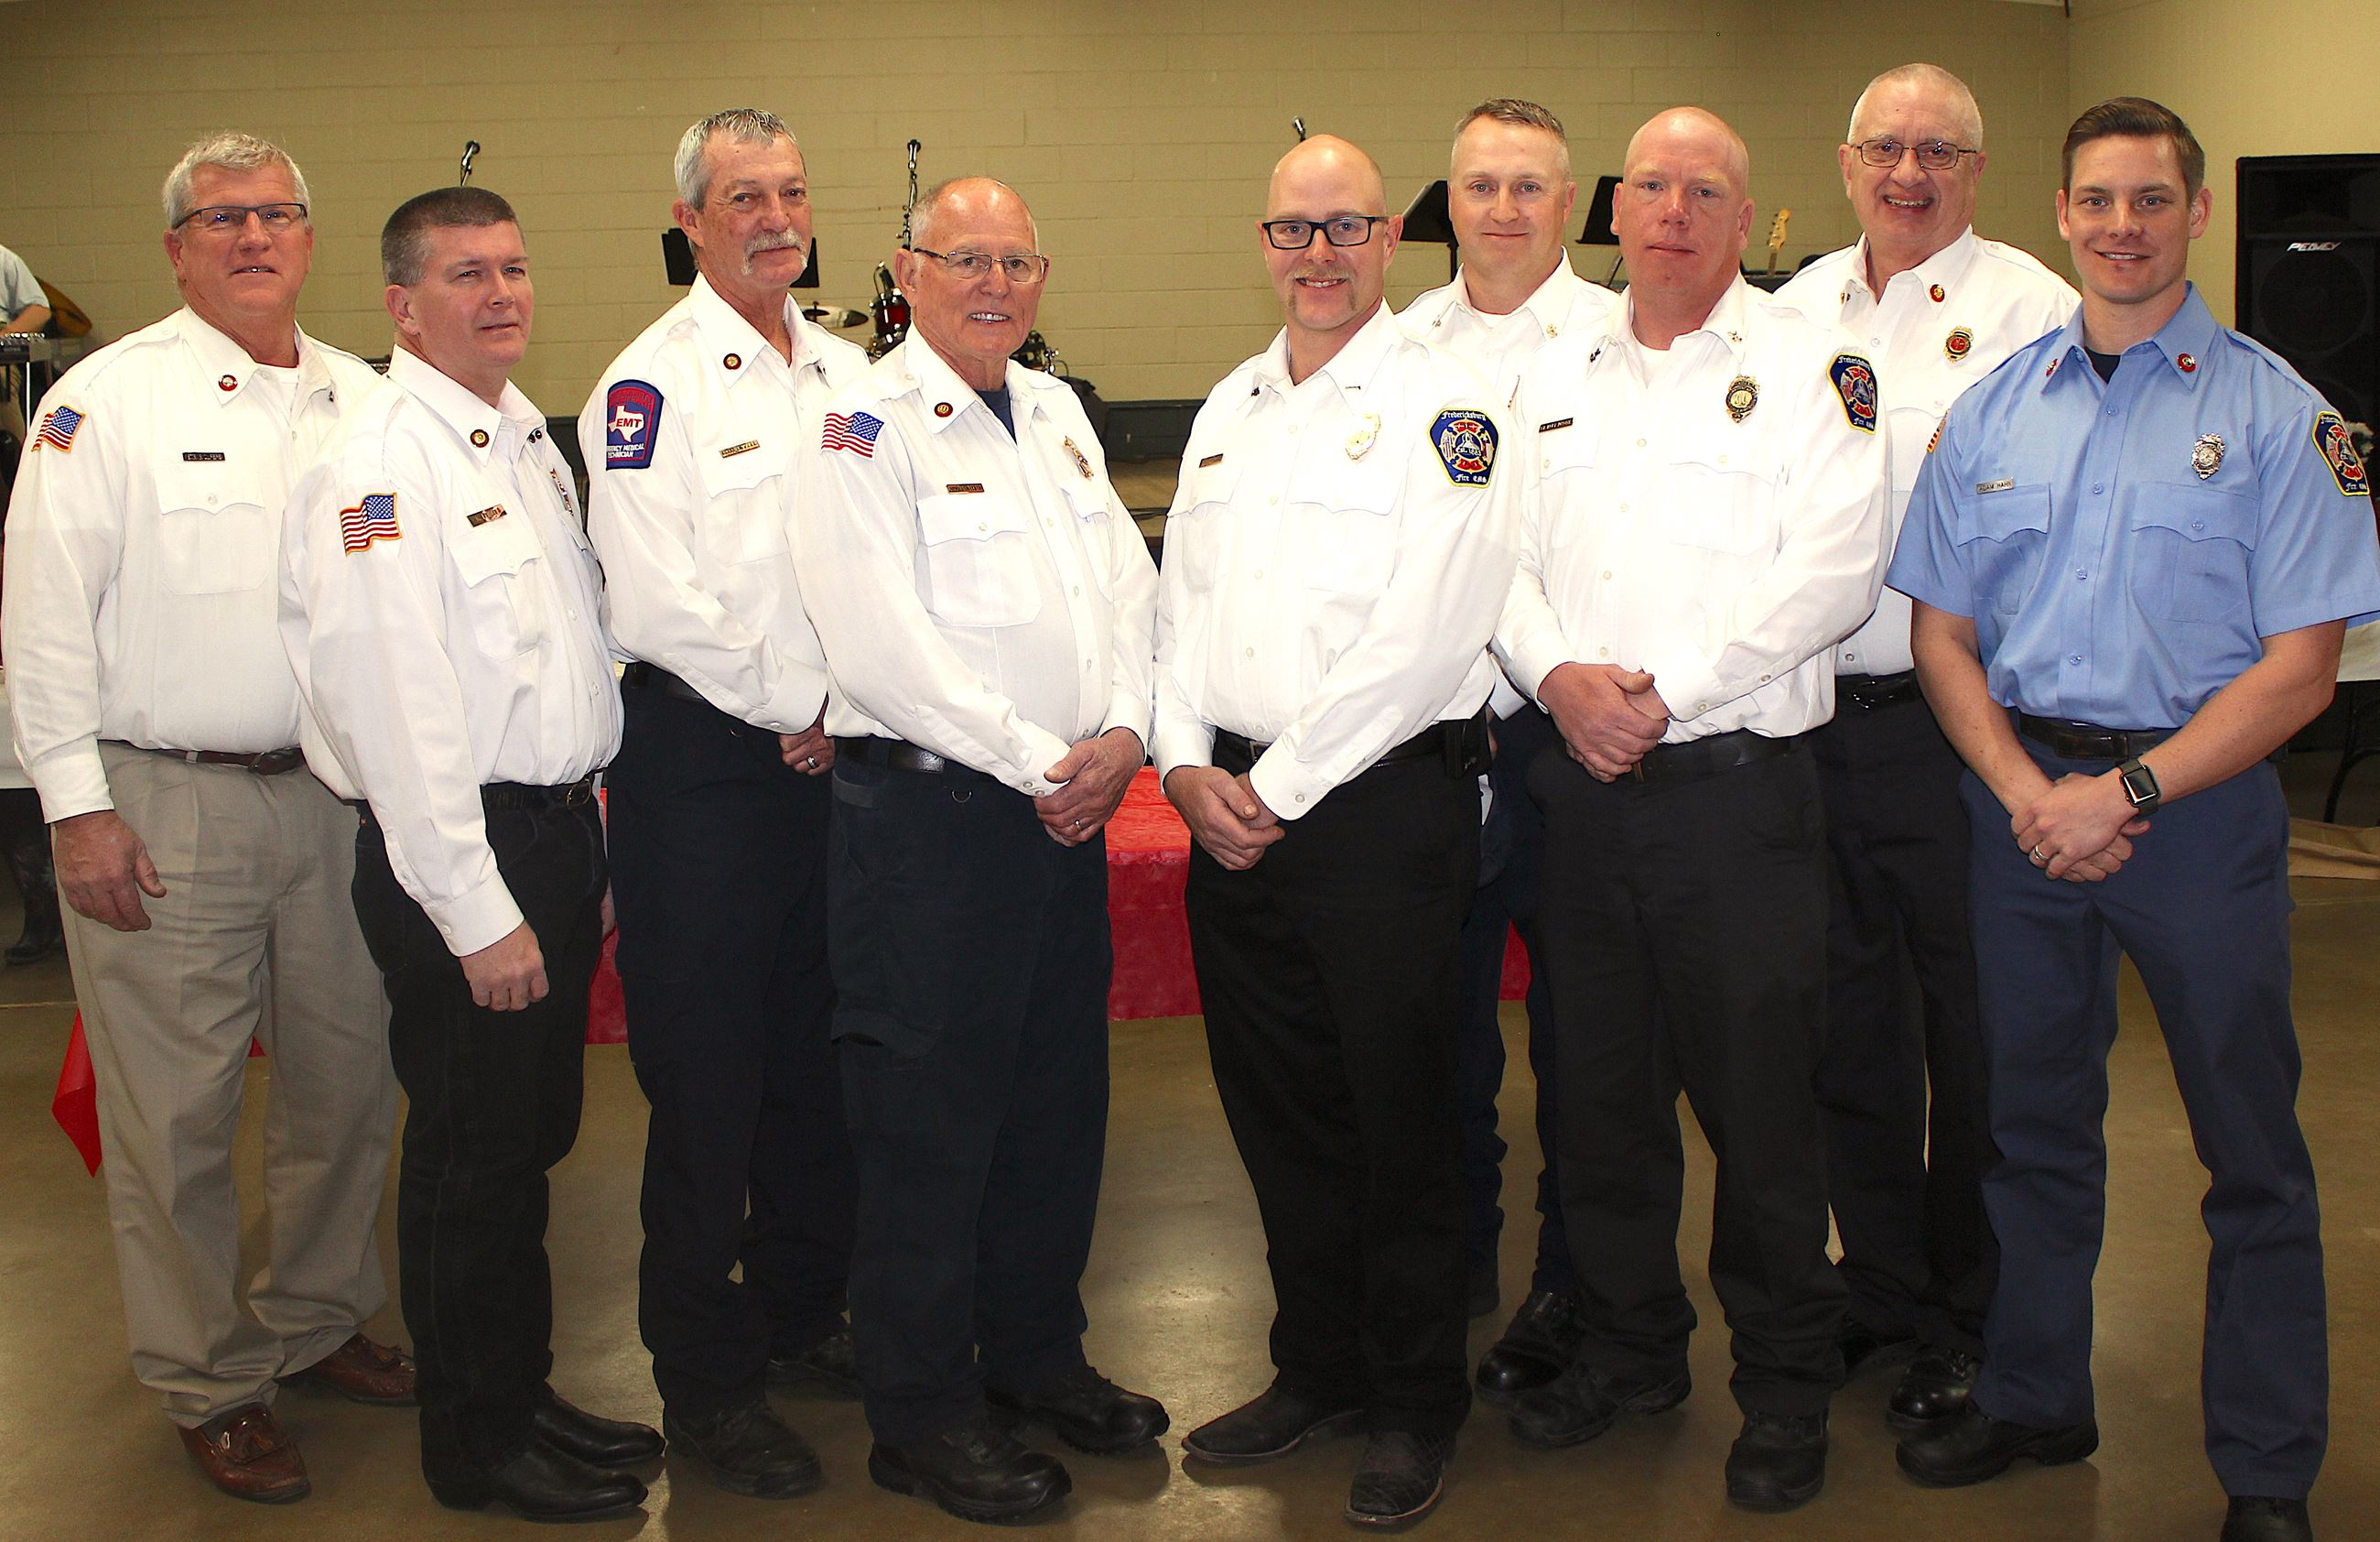 Fire Dept Officers 2018